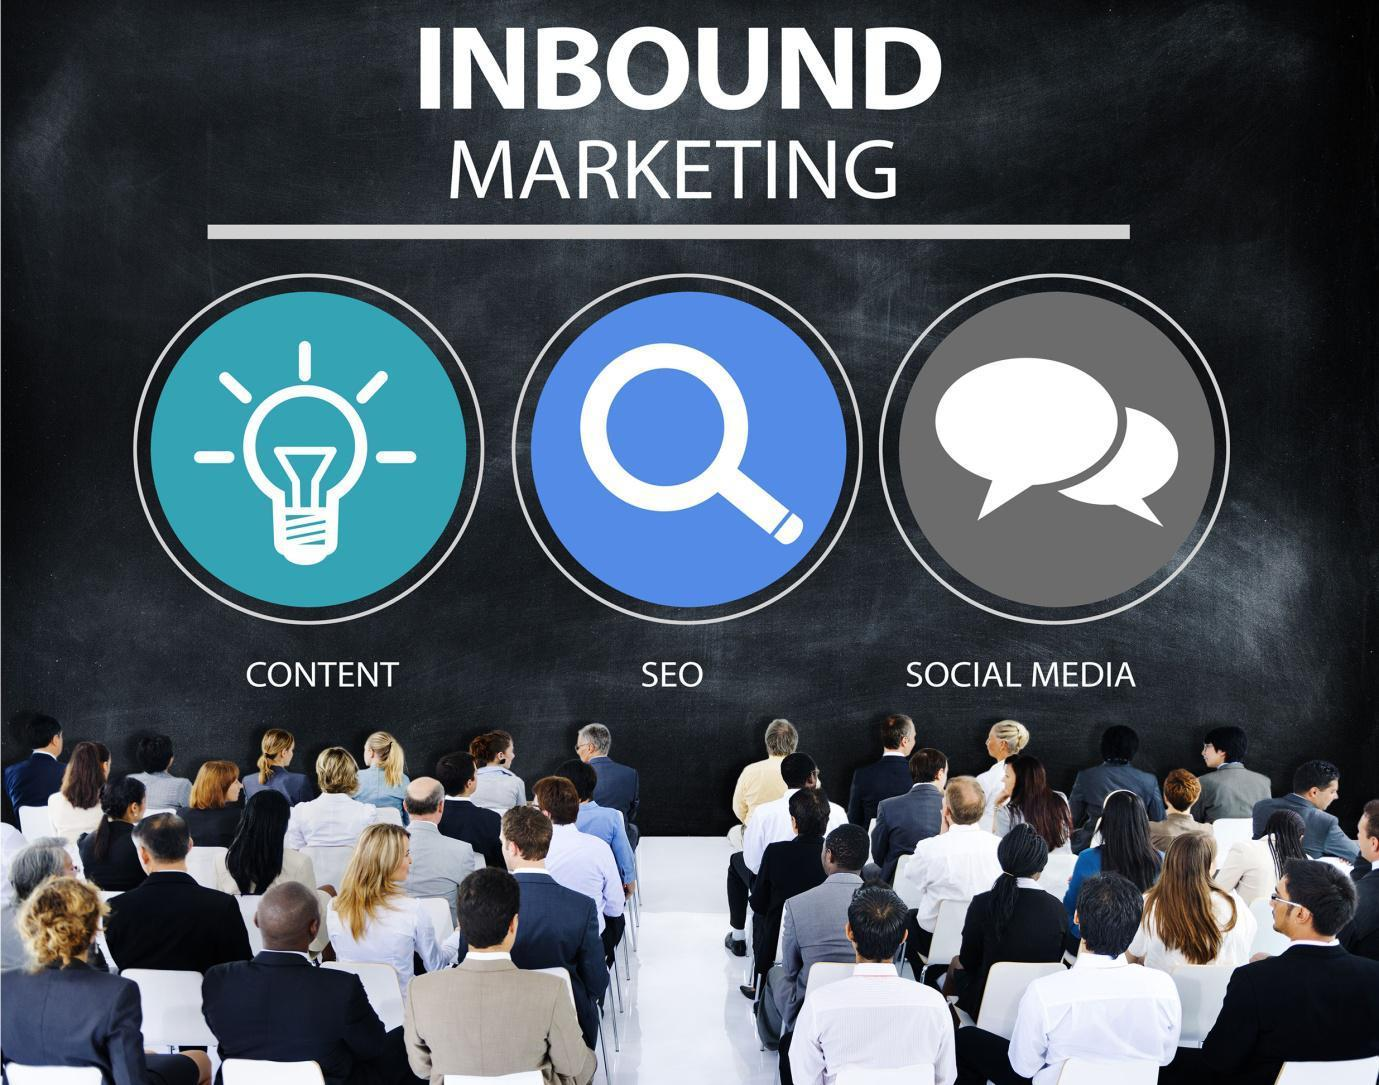 Build Your Brand via Inbound Marketing